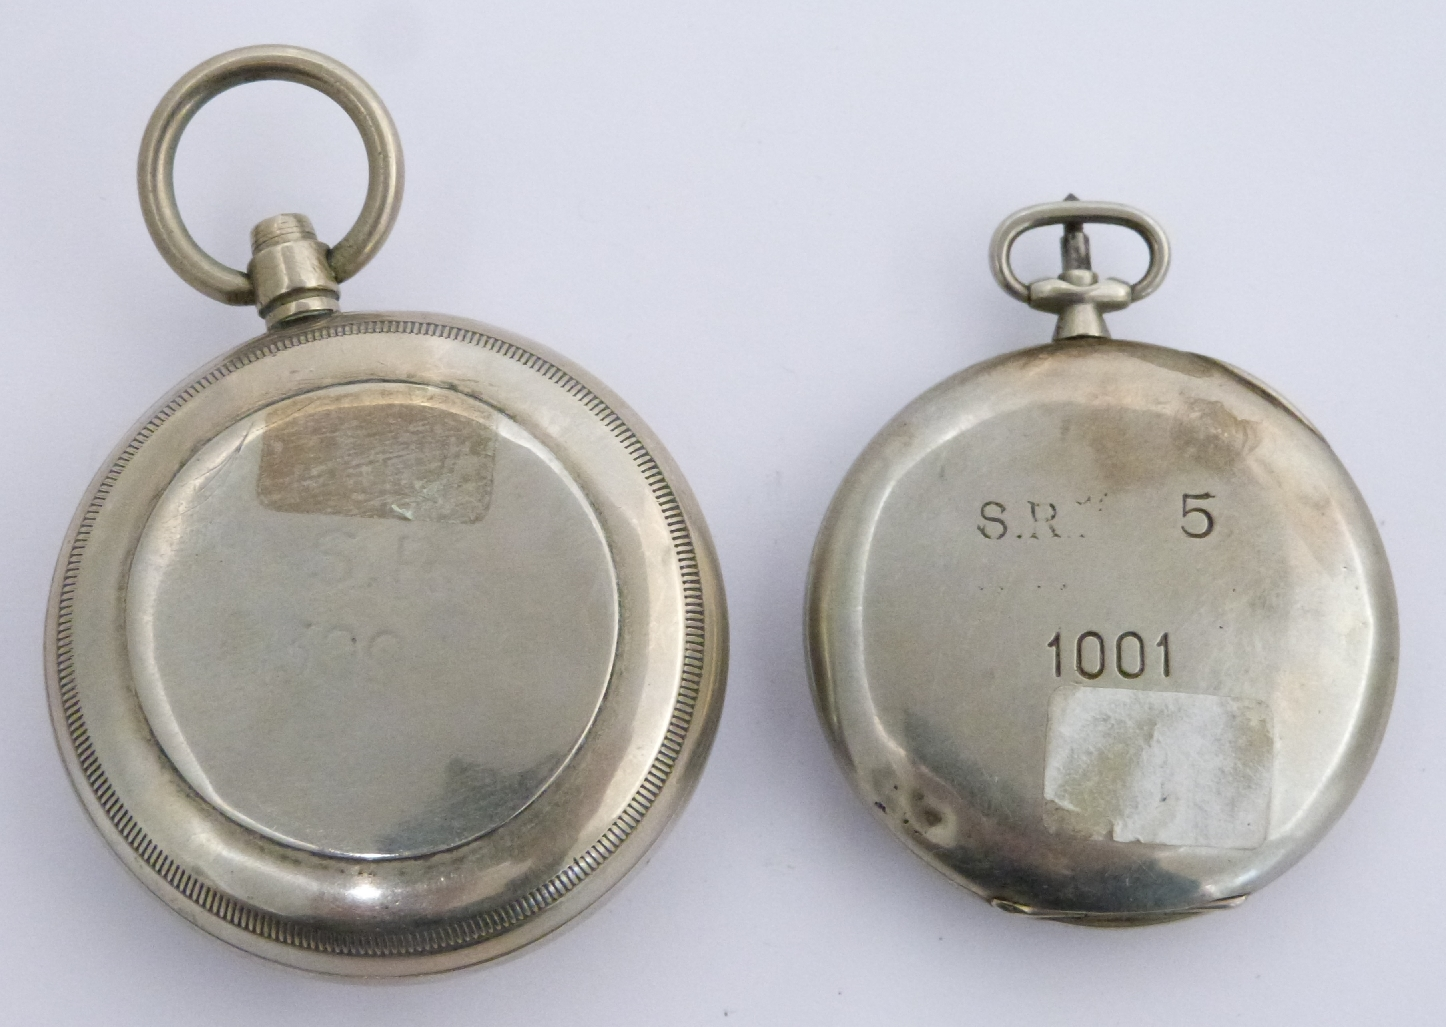 Lot 47 - Southern Railways Waltham keyless winding open faced pocket watch with subsidiary seconds dial,